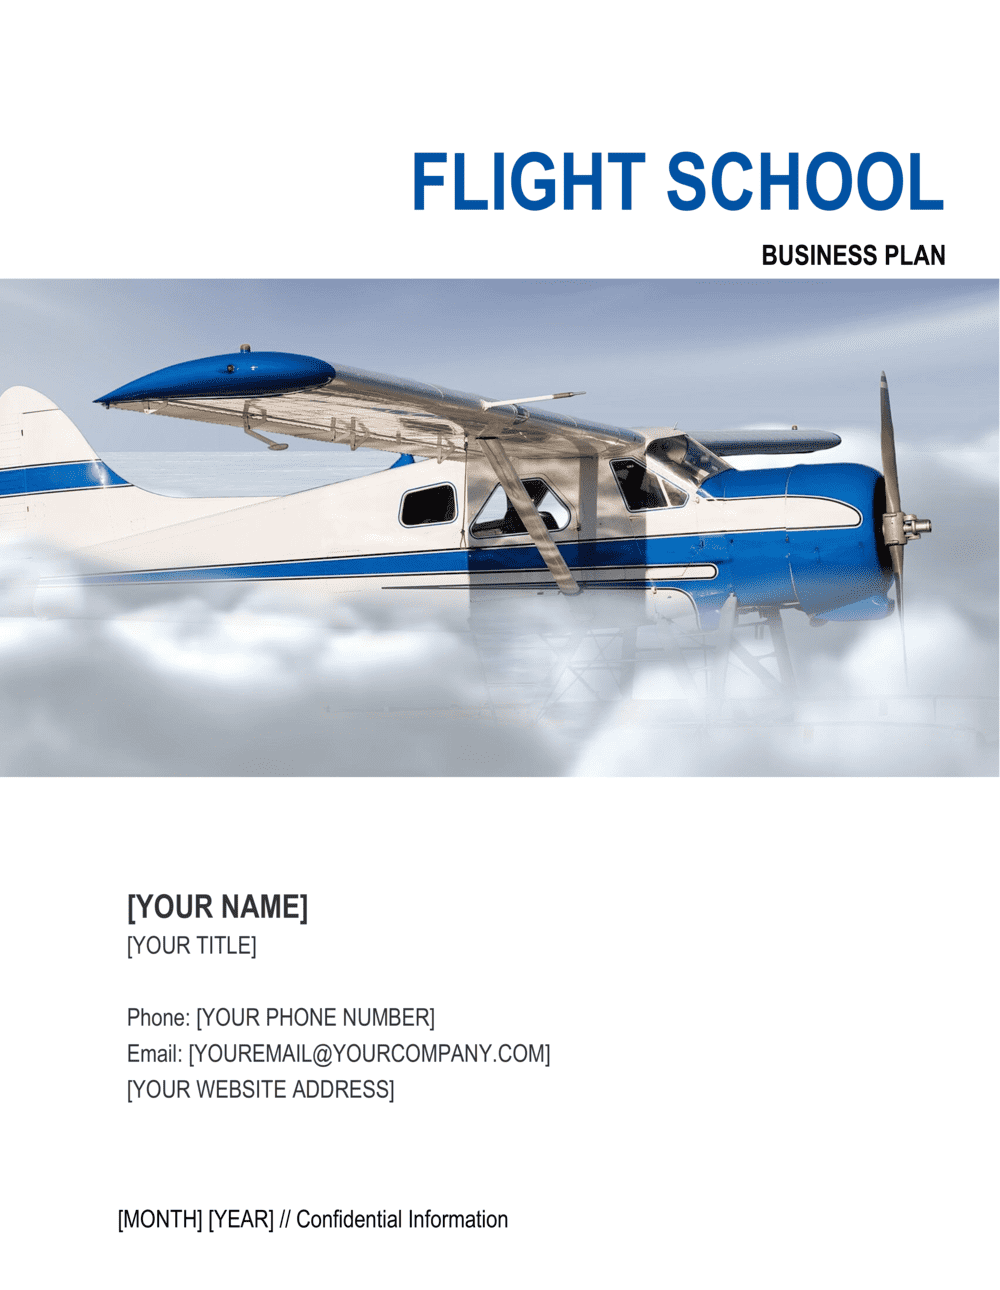 Business-in-a-Box's Flight School Business Plan Template